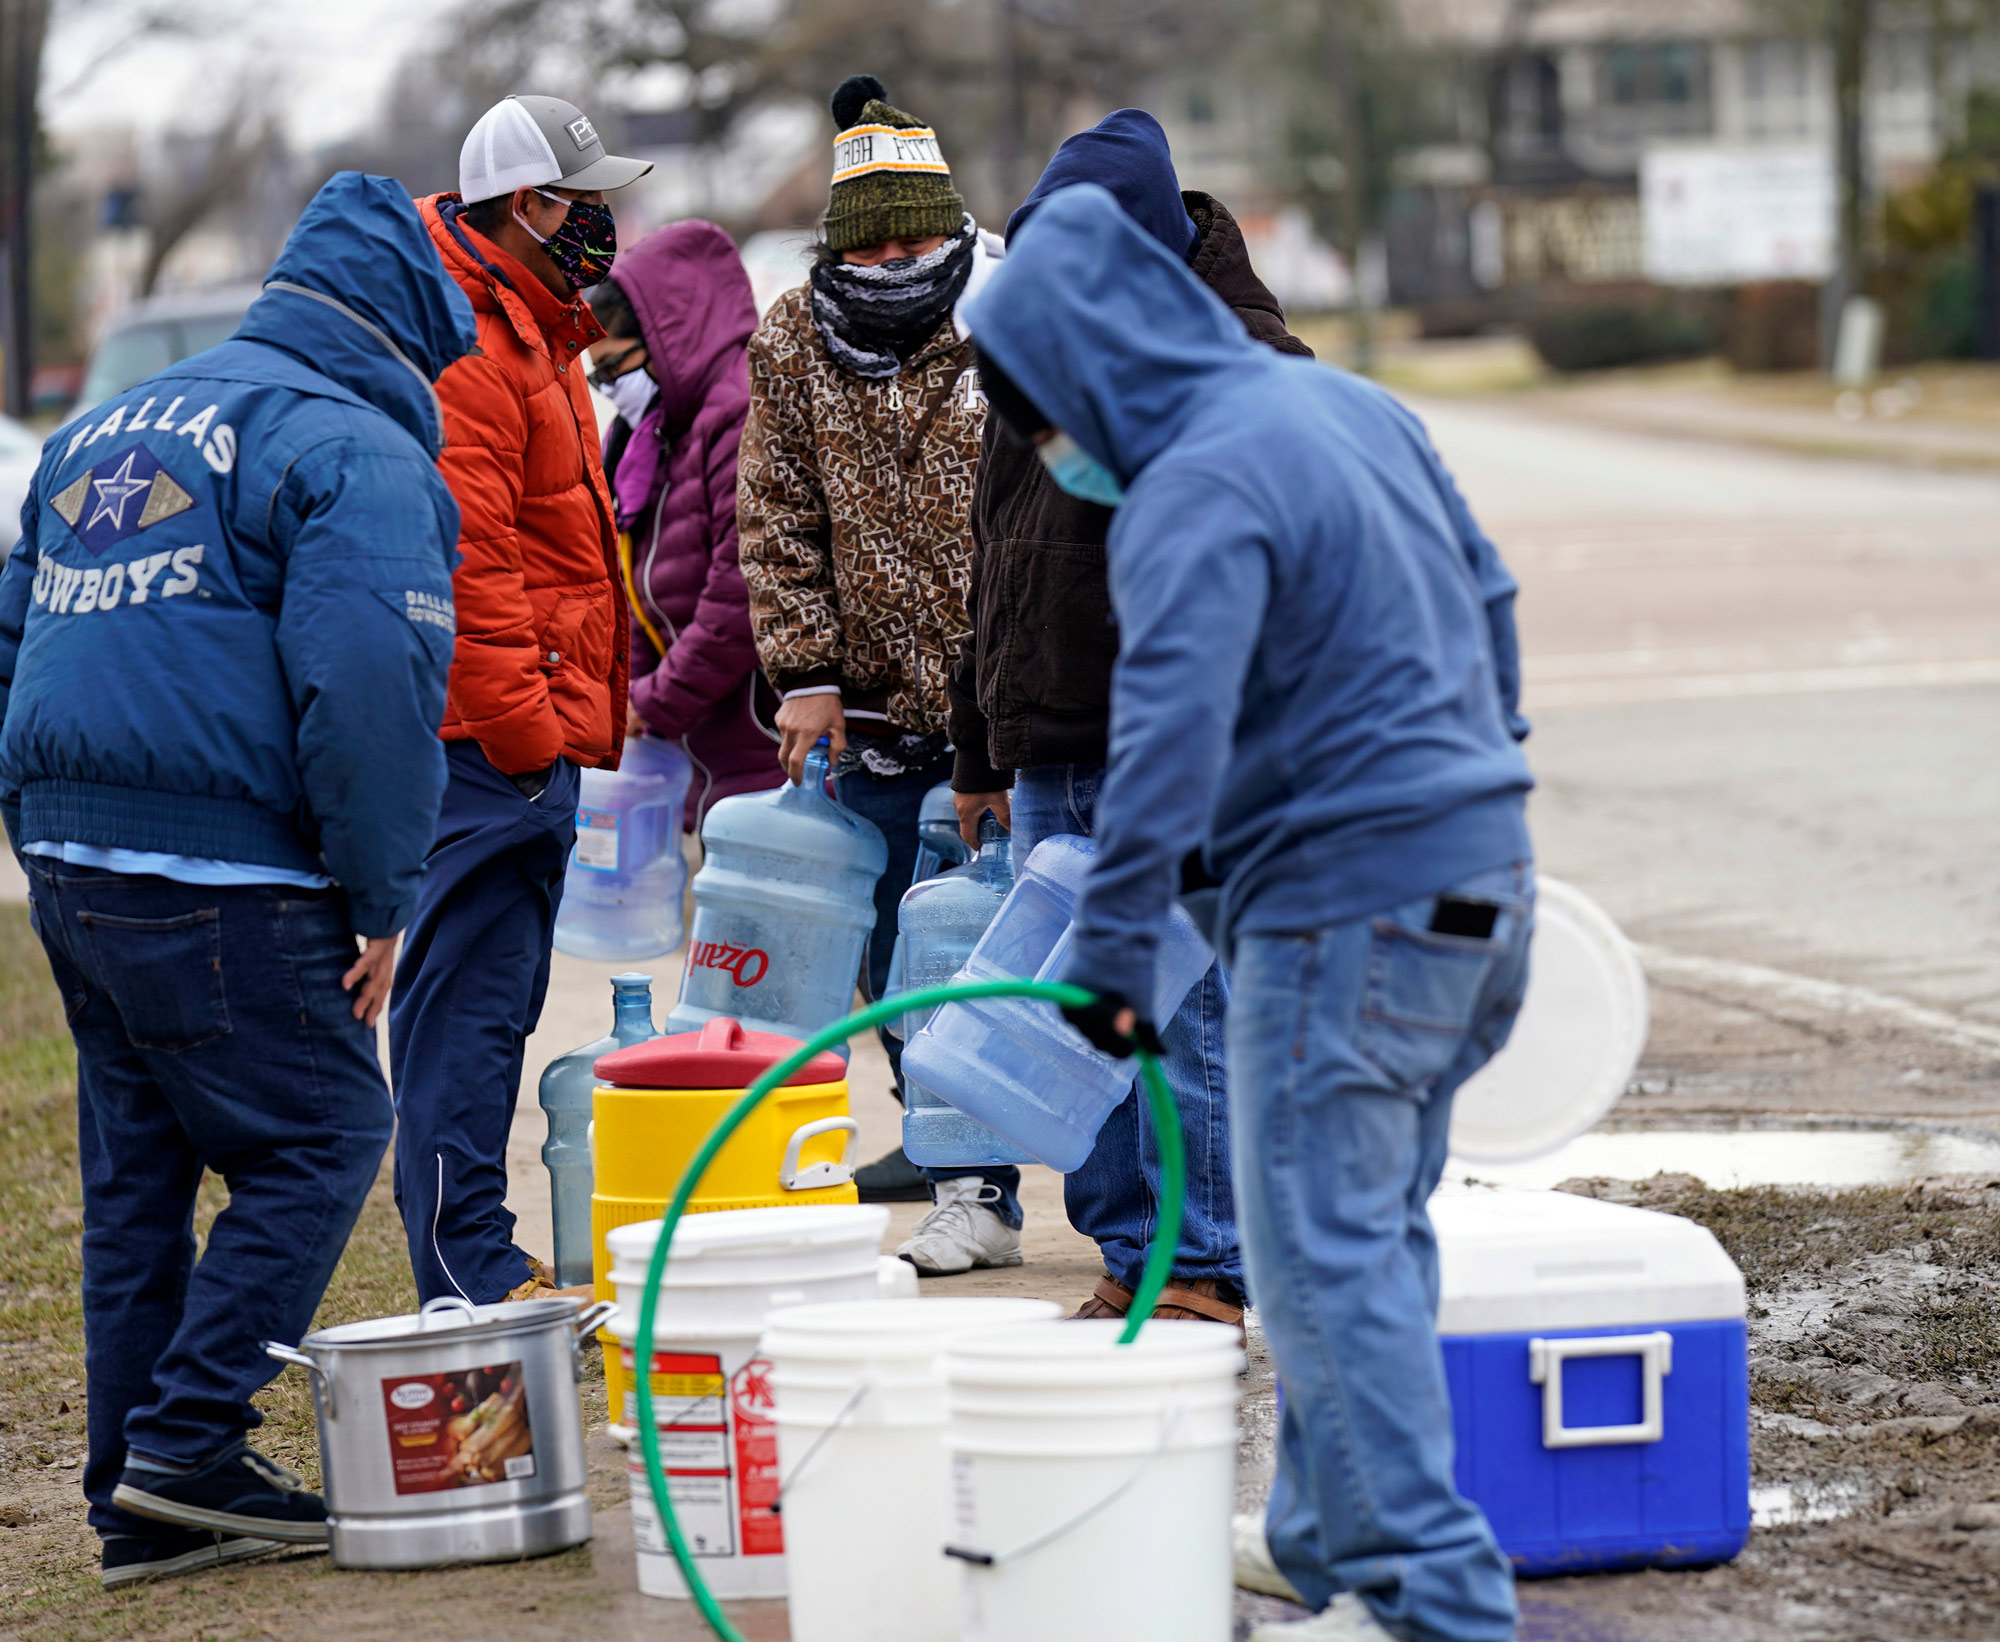 People wait in line to fill containers with water from a park spigot on February 18 in Houston, Texas.